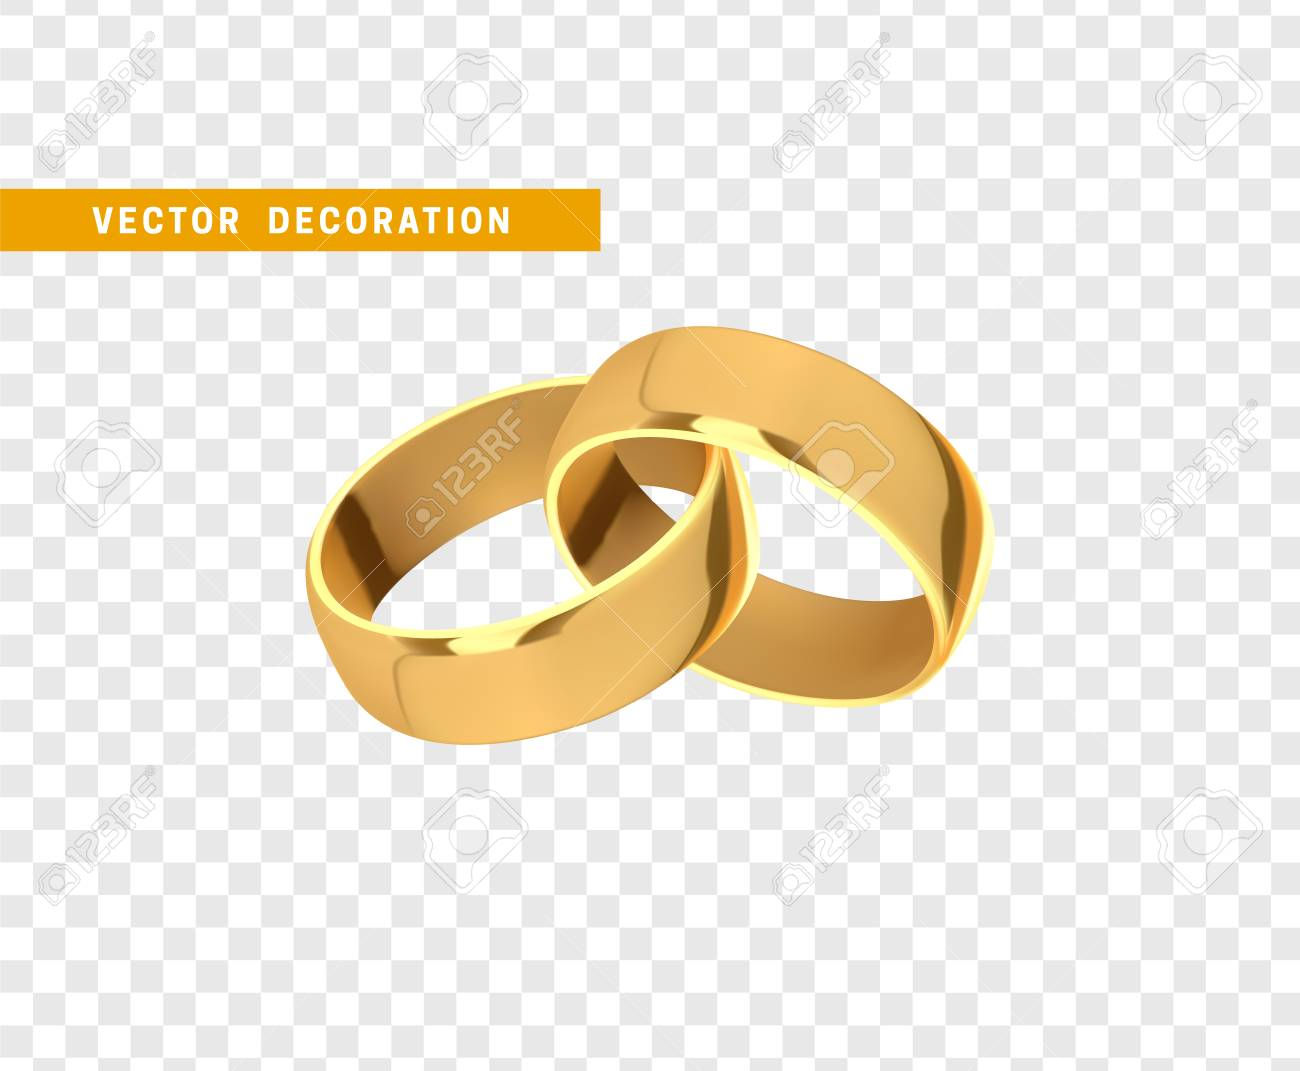 Golden Wedding Rings Realistic Design Isolated On Transparent Background Stock Vector 97894846: Wedding Ring Without Background At Websimilar.org